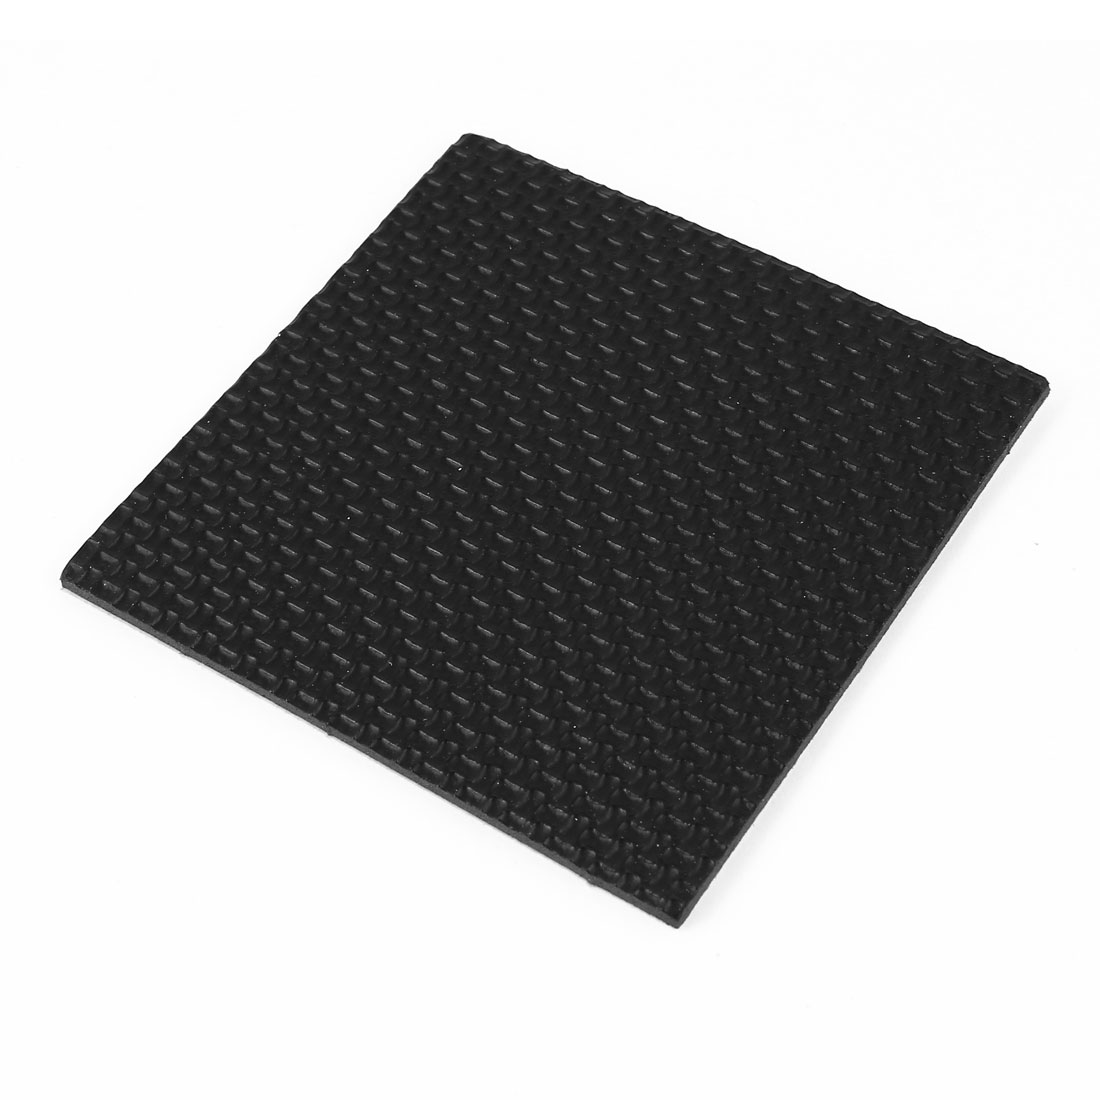 "Anti Skid Self Adhesive Square Furniture Protection Mat 3.5"" Width"